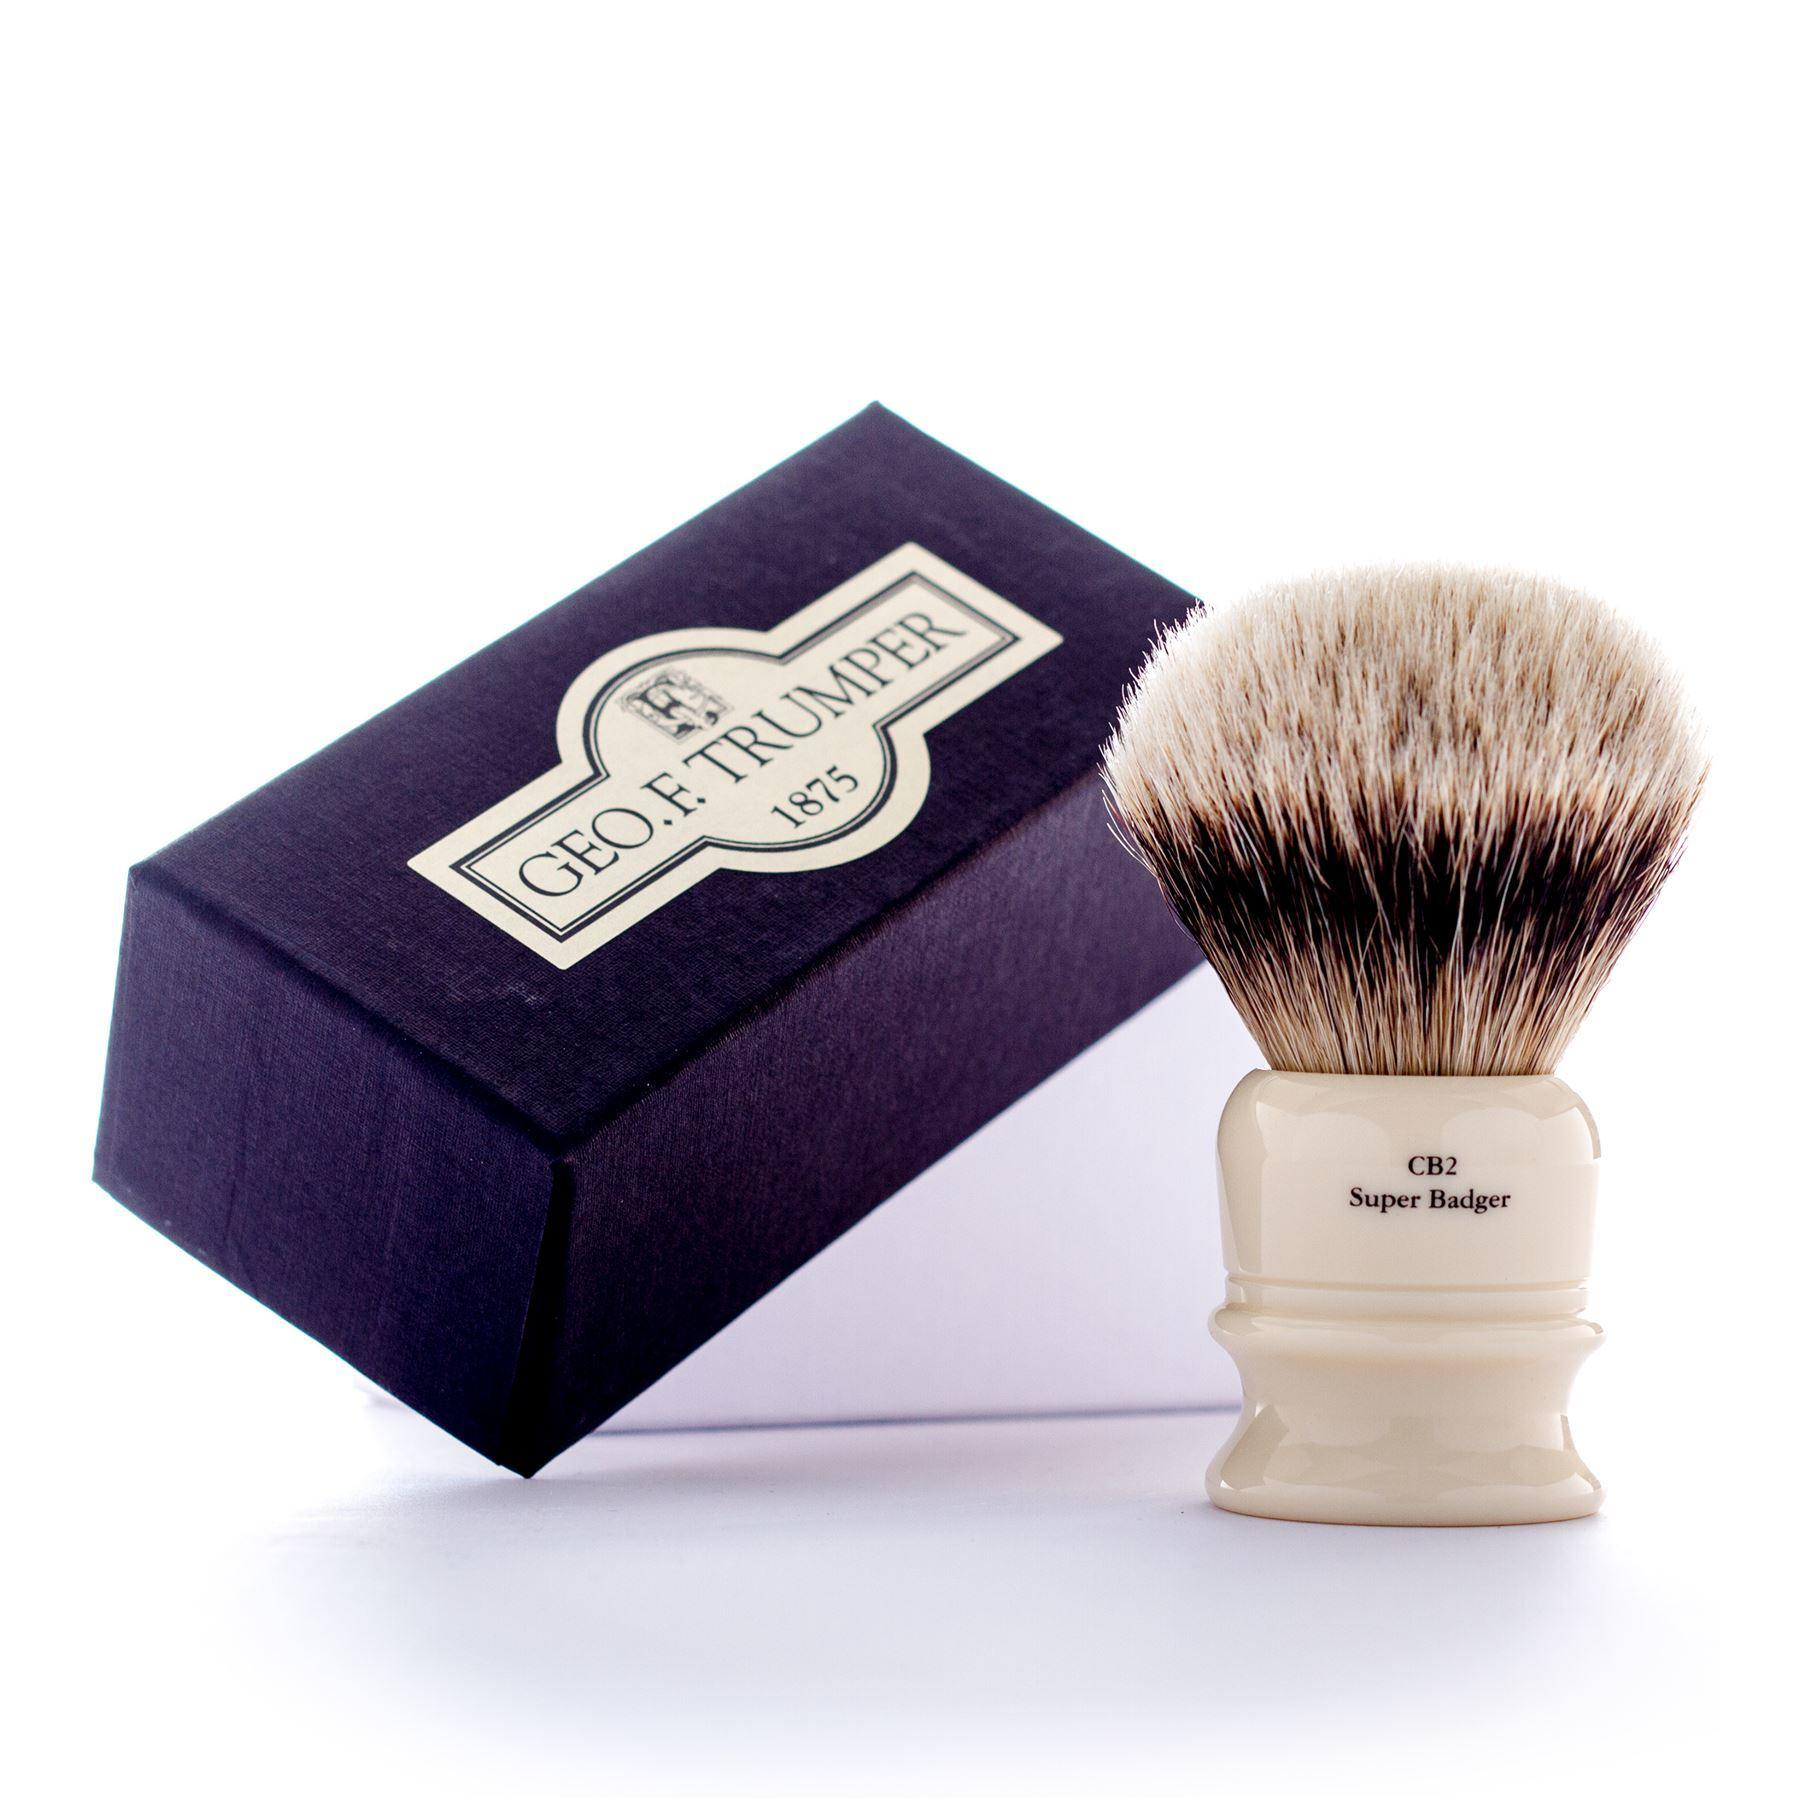 Geo F Trumper Simulated Ivory CB2 Super Badger Hair Shaving Brush